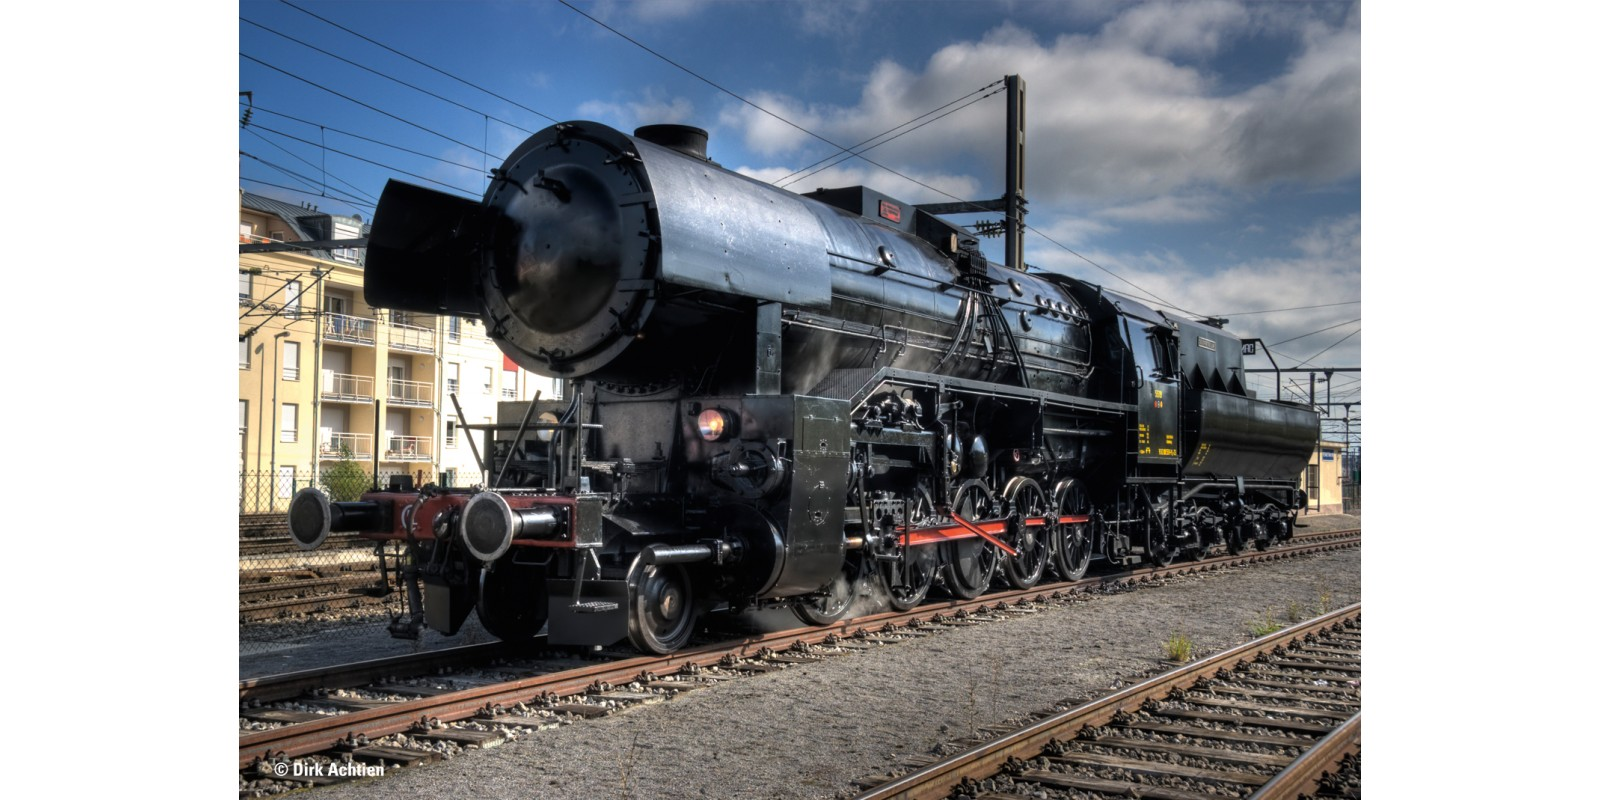 39046 Heavy Steam Freight Locomotive with a Tub-Style Tender, Road Number 5519